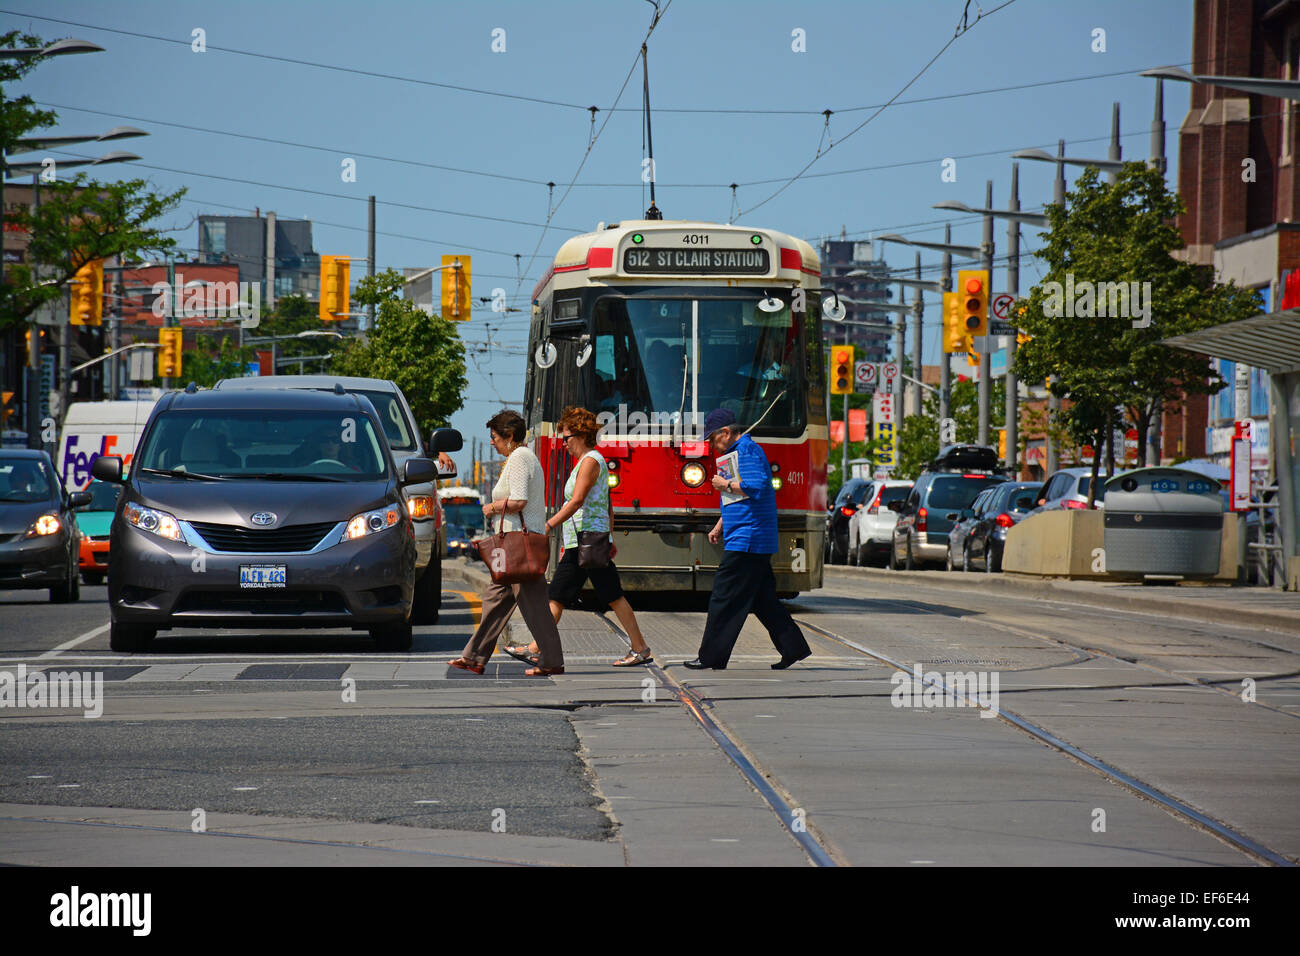 Crosswalk In Toronto street, Canada - Stock Image